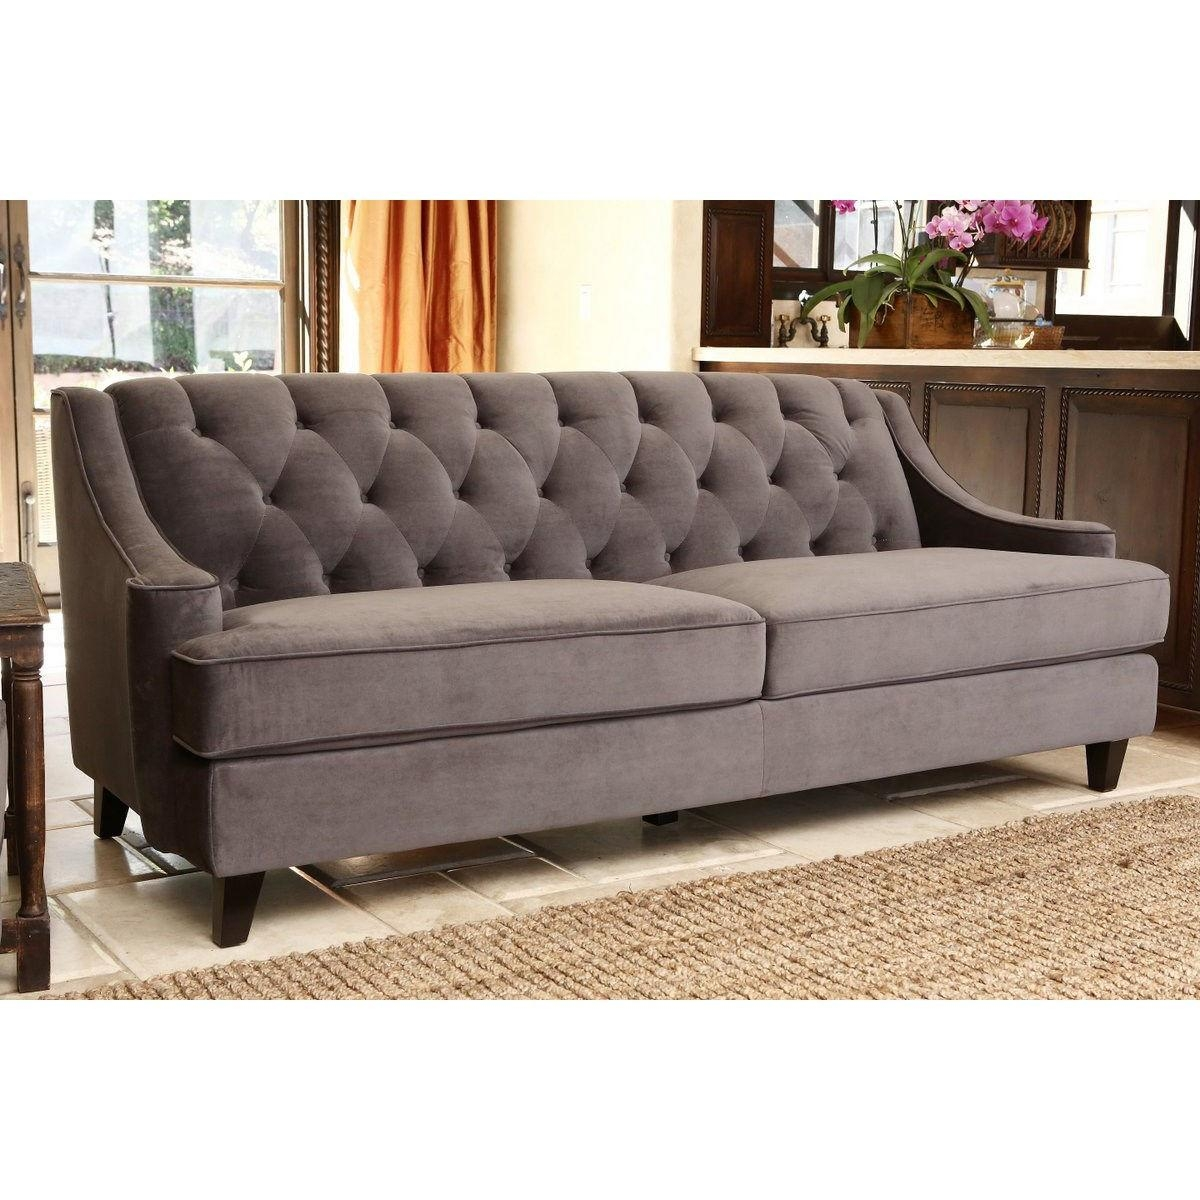 Sofas Center : Abbyson Living Mp Gry Sofa Set At Costco Table Intended For Abbyson Living Sofas (Image 15 of 20)